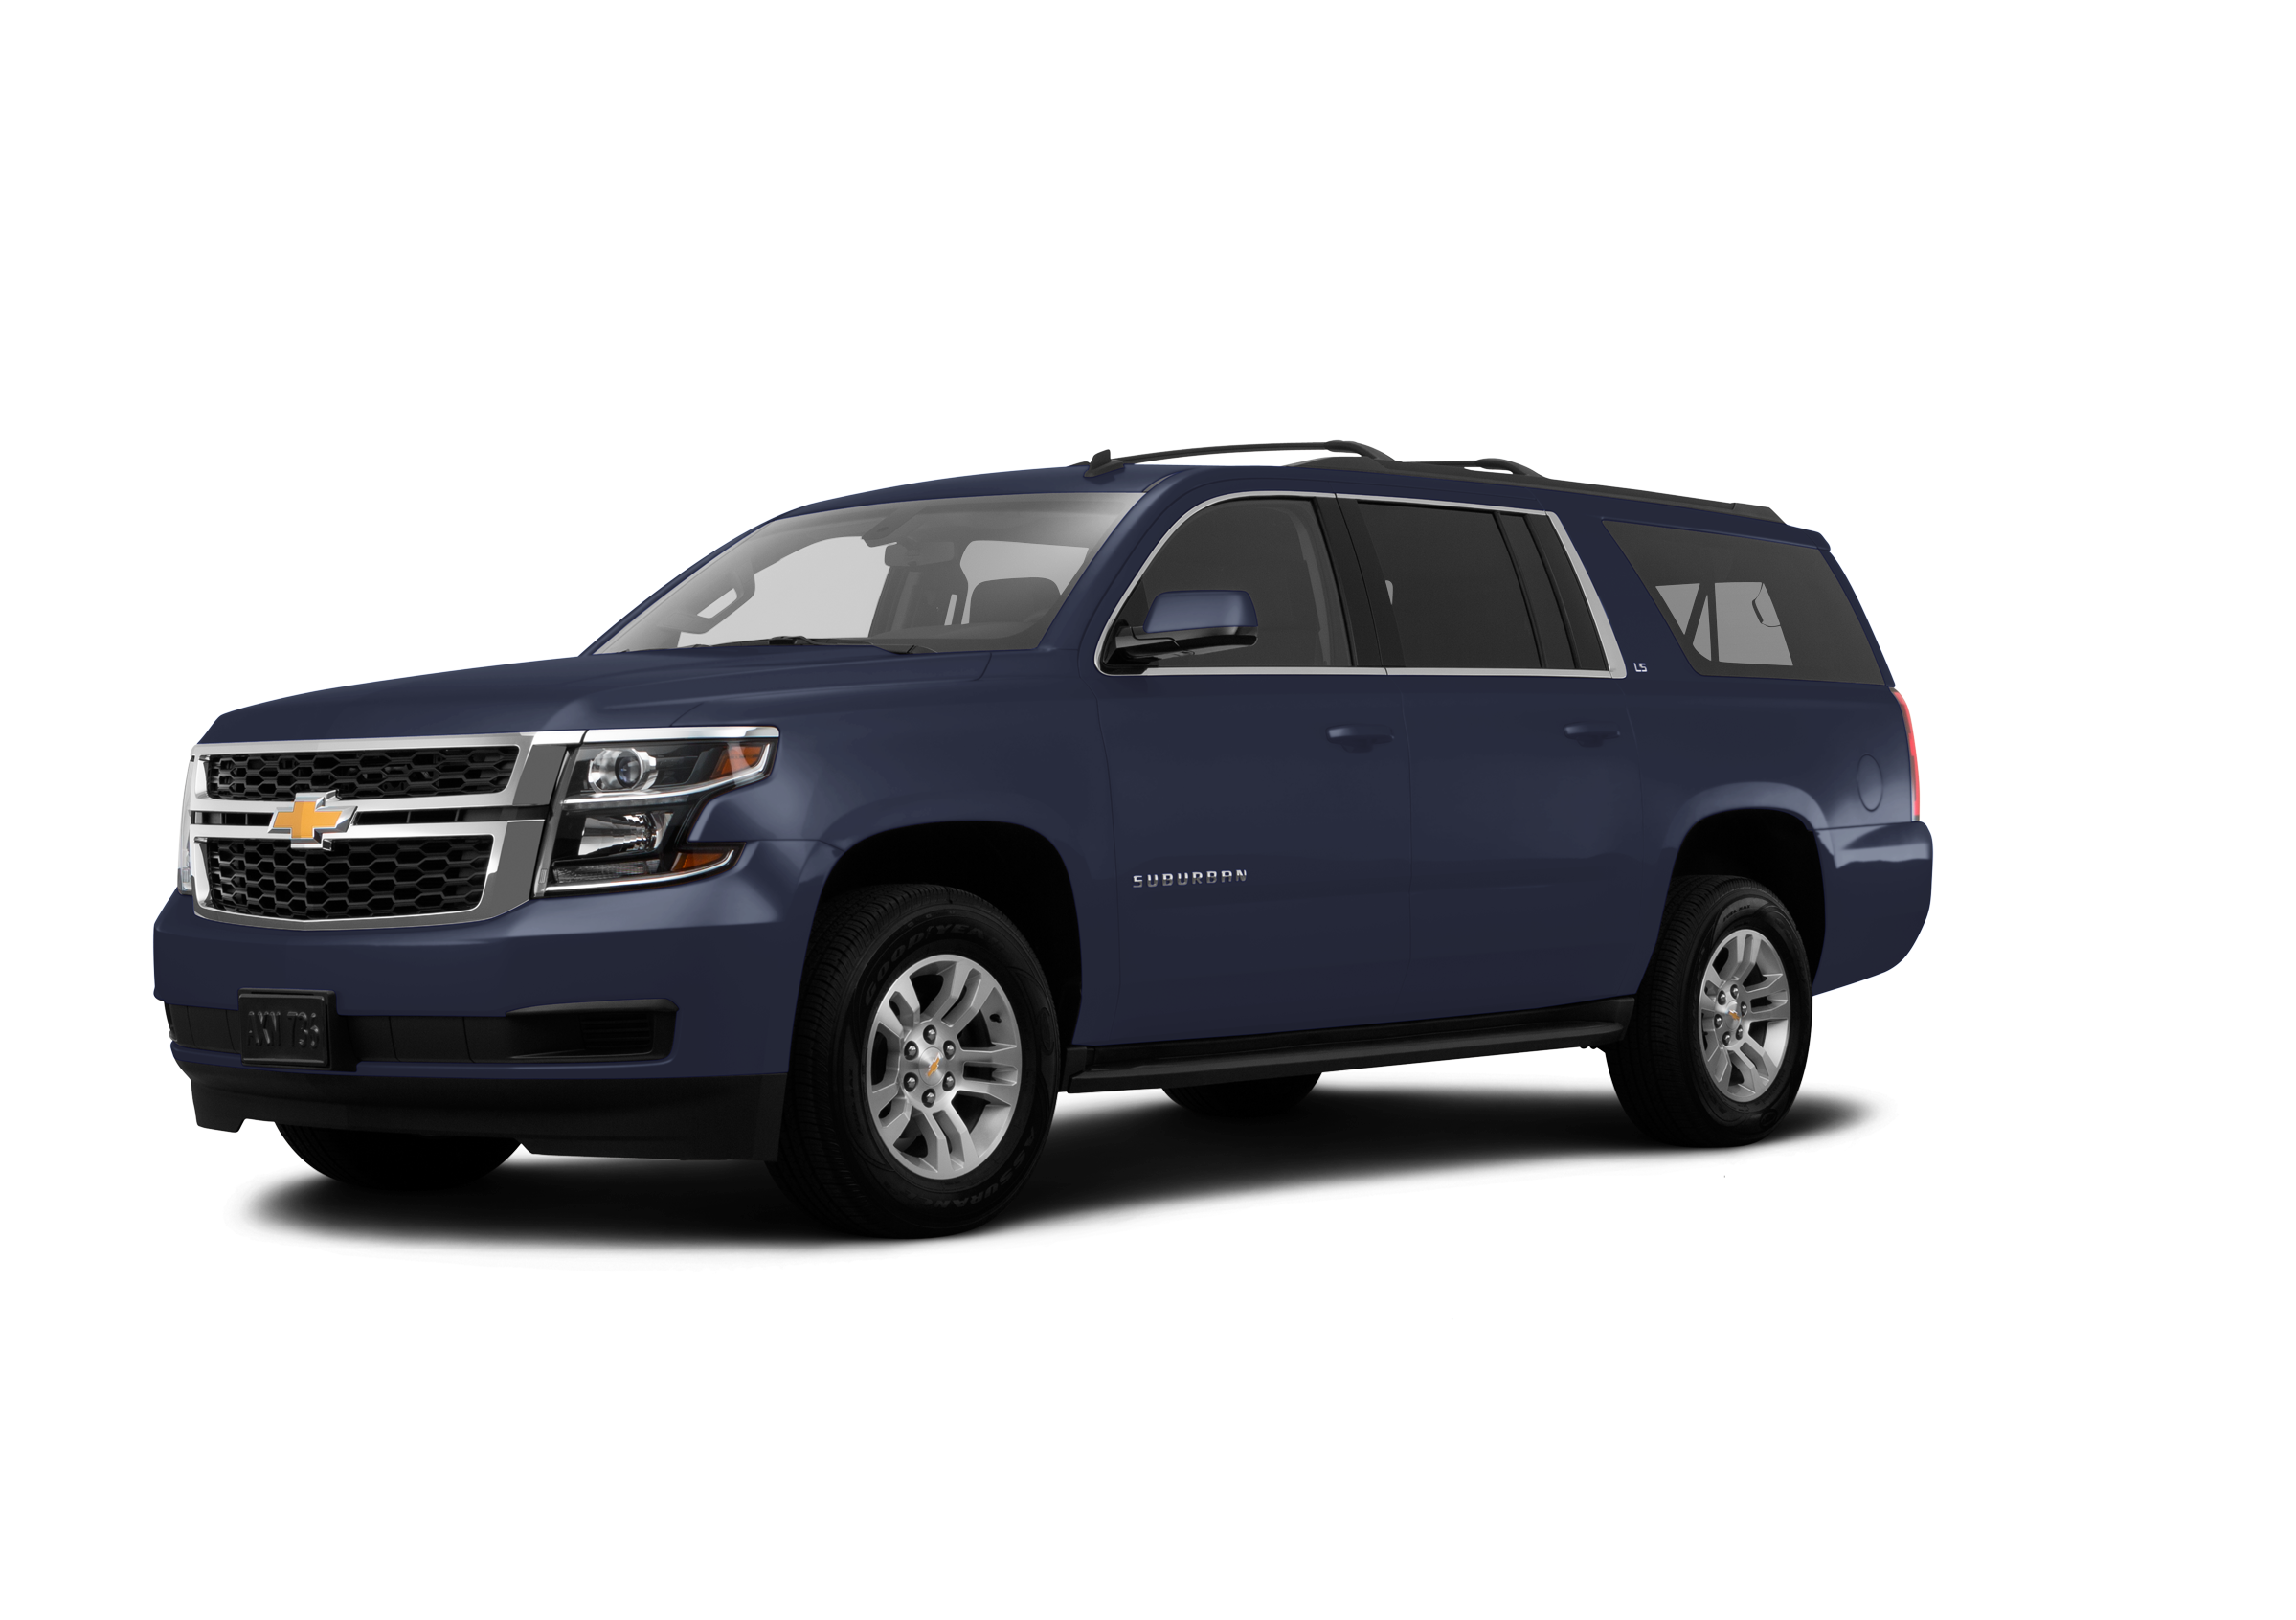 Research The 2017 Chevrolet Suburban 2WD LS in Syracuse